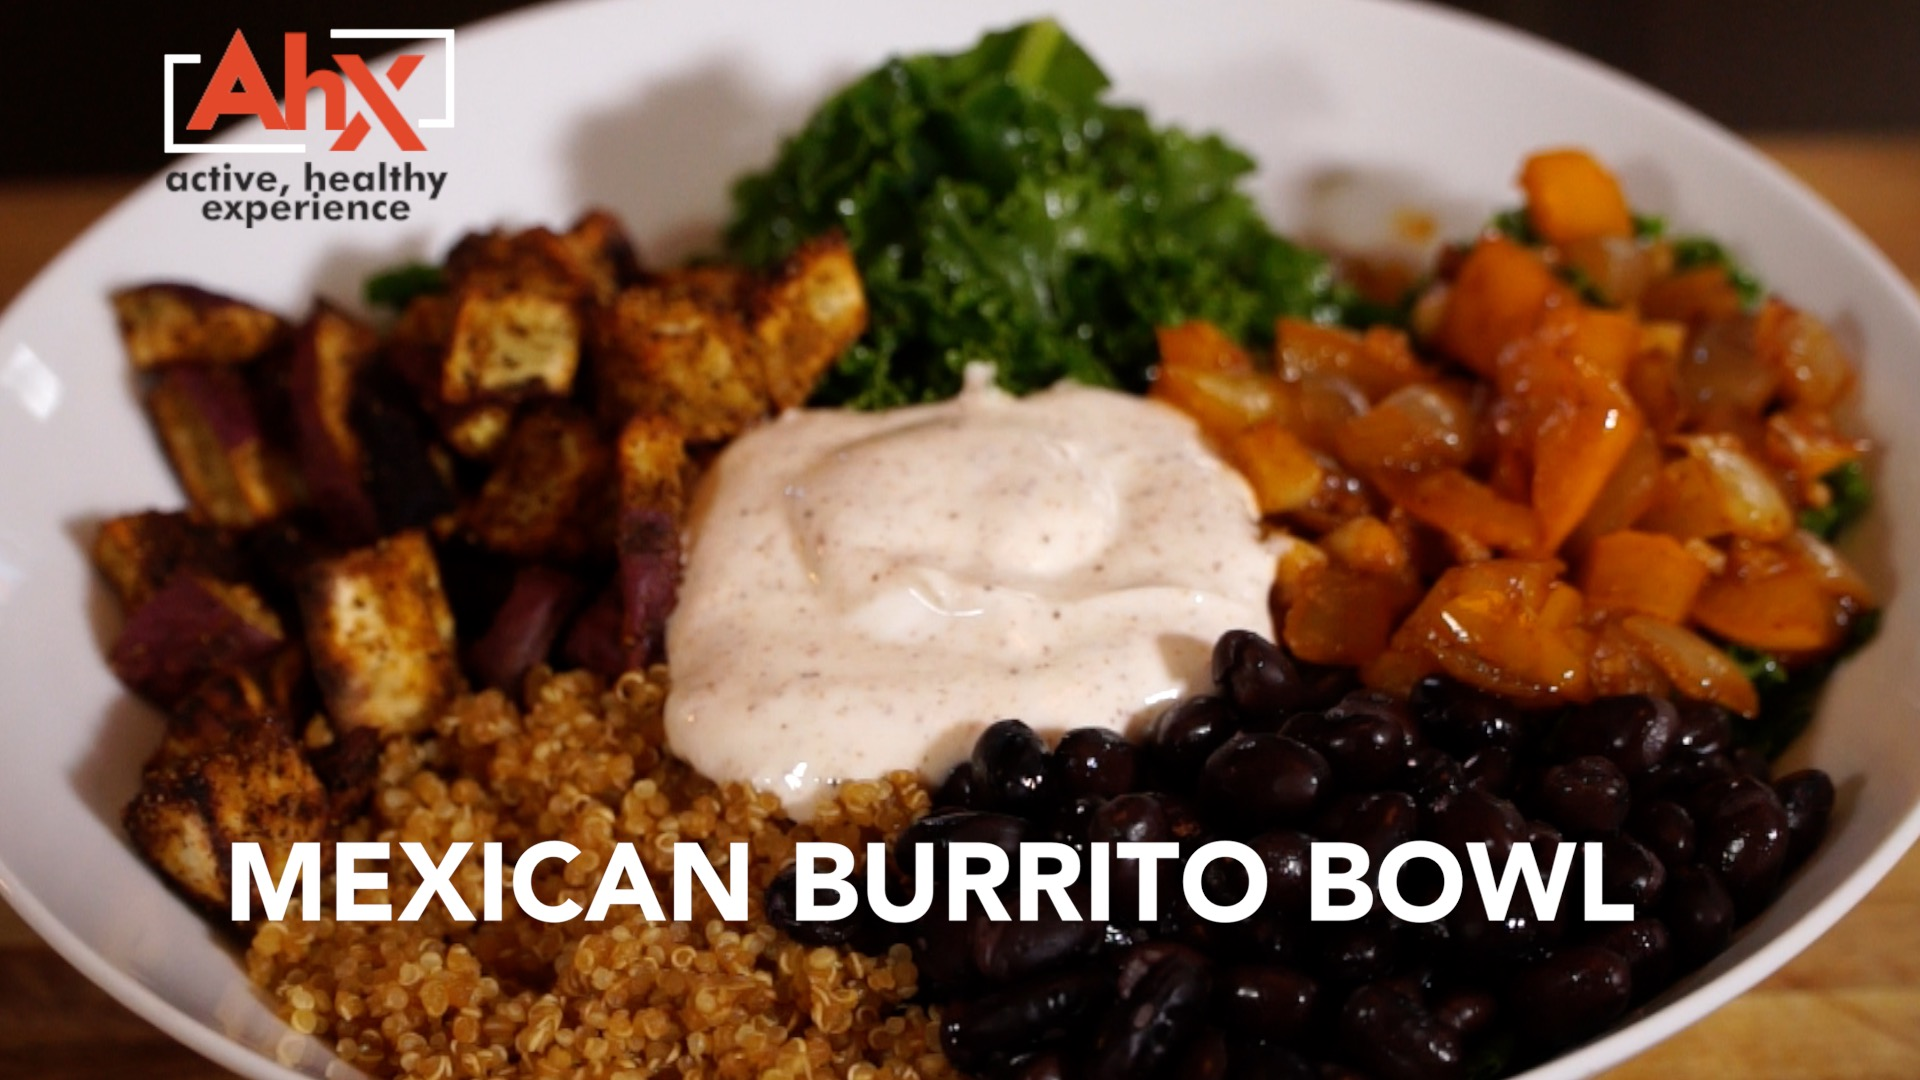 Healthy Vegetarian Mexican Burrito Bowl | AHX